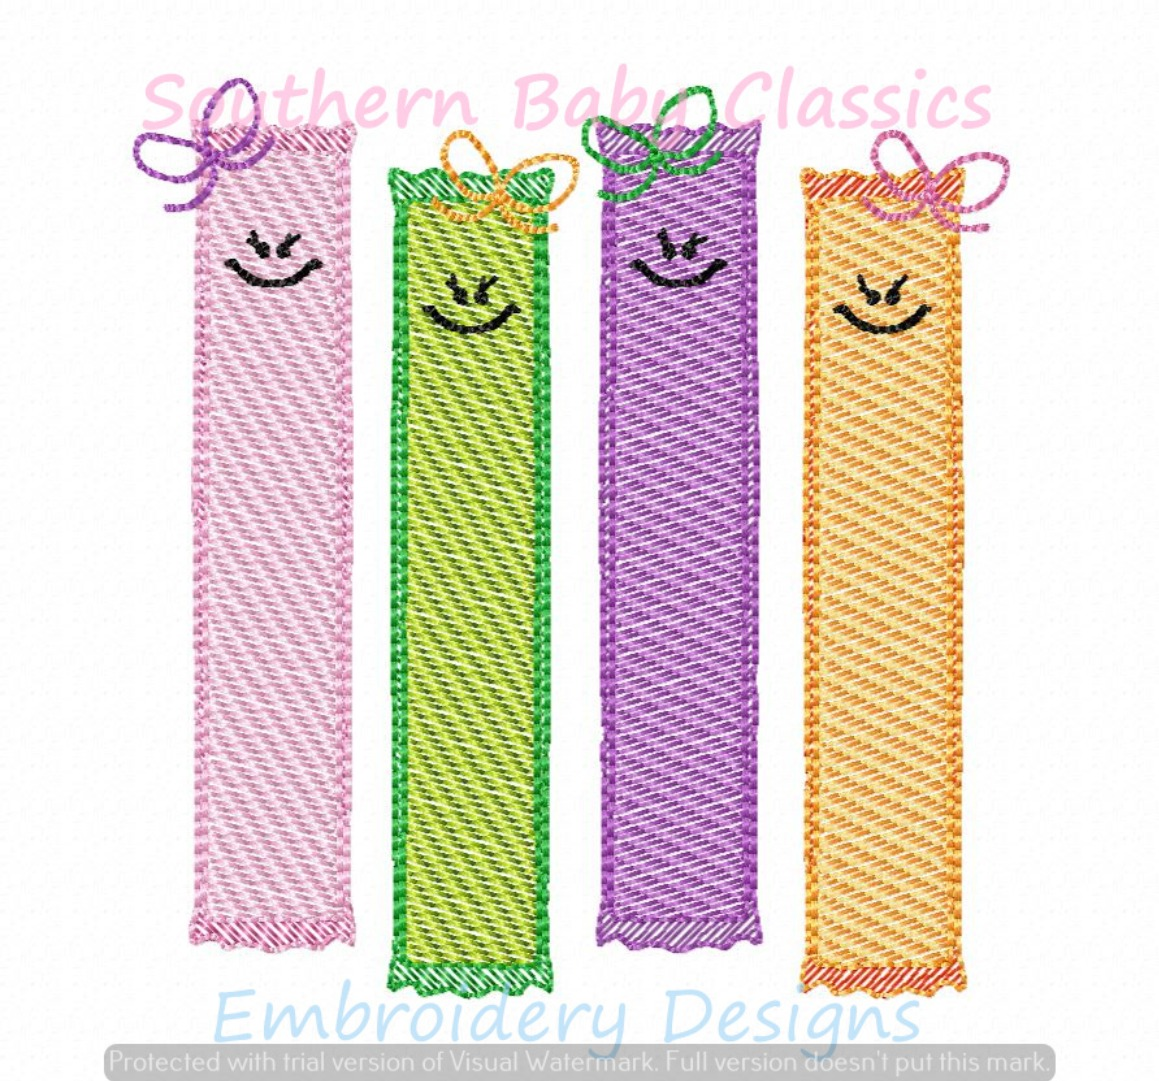 Ice Pops Popsicle Ice Cream Light Sketchy Fill Machine Embroidery Design Popsicles Summer Girl Bow